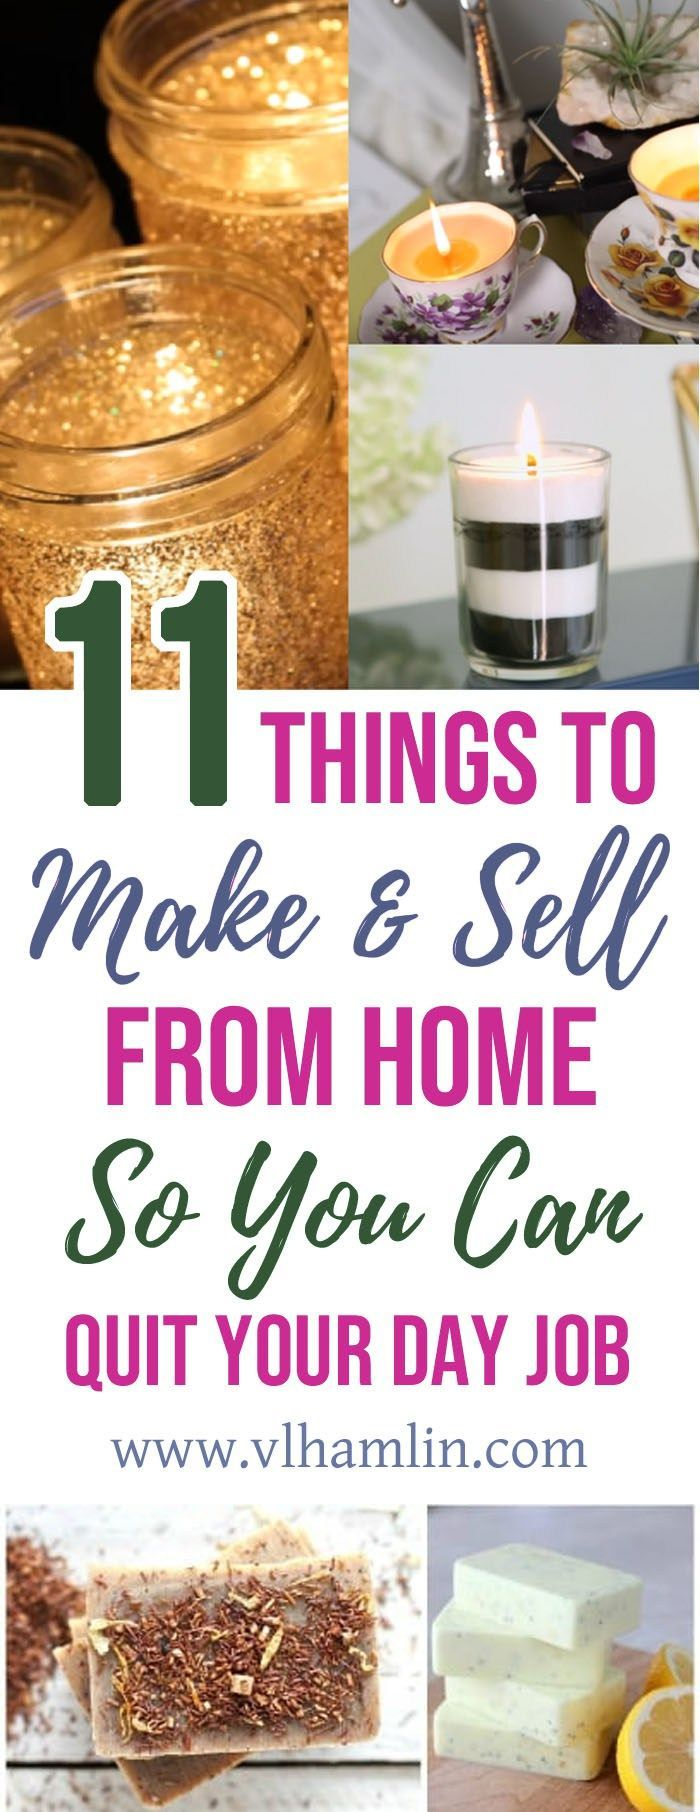 11 Things To Make And Sell From Home Posted Feb 2018 Things To